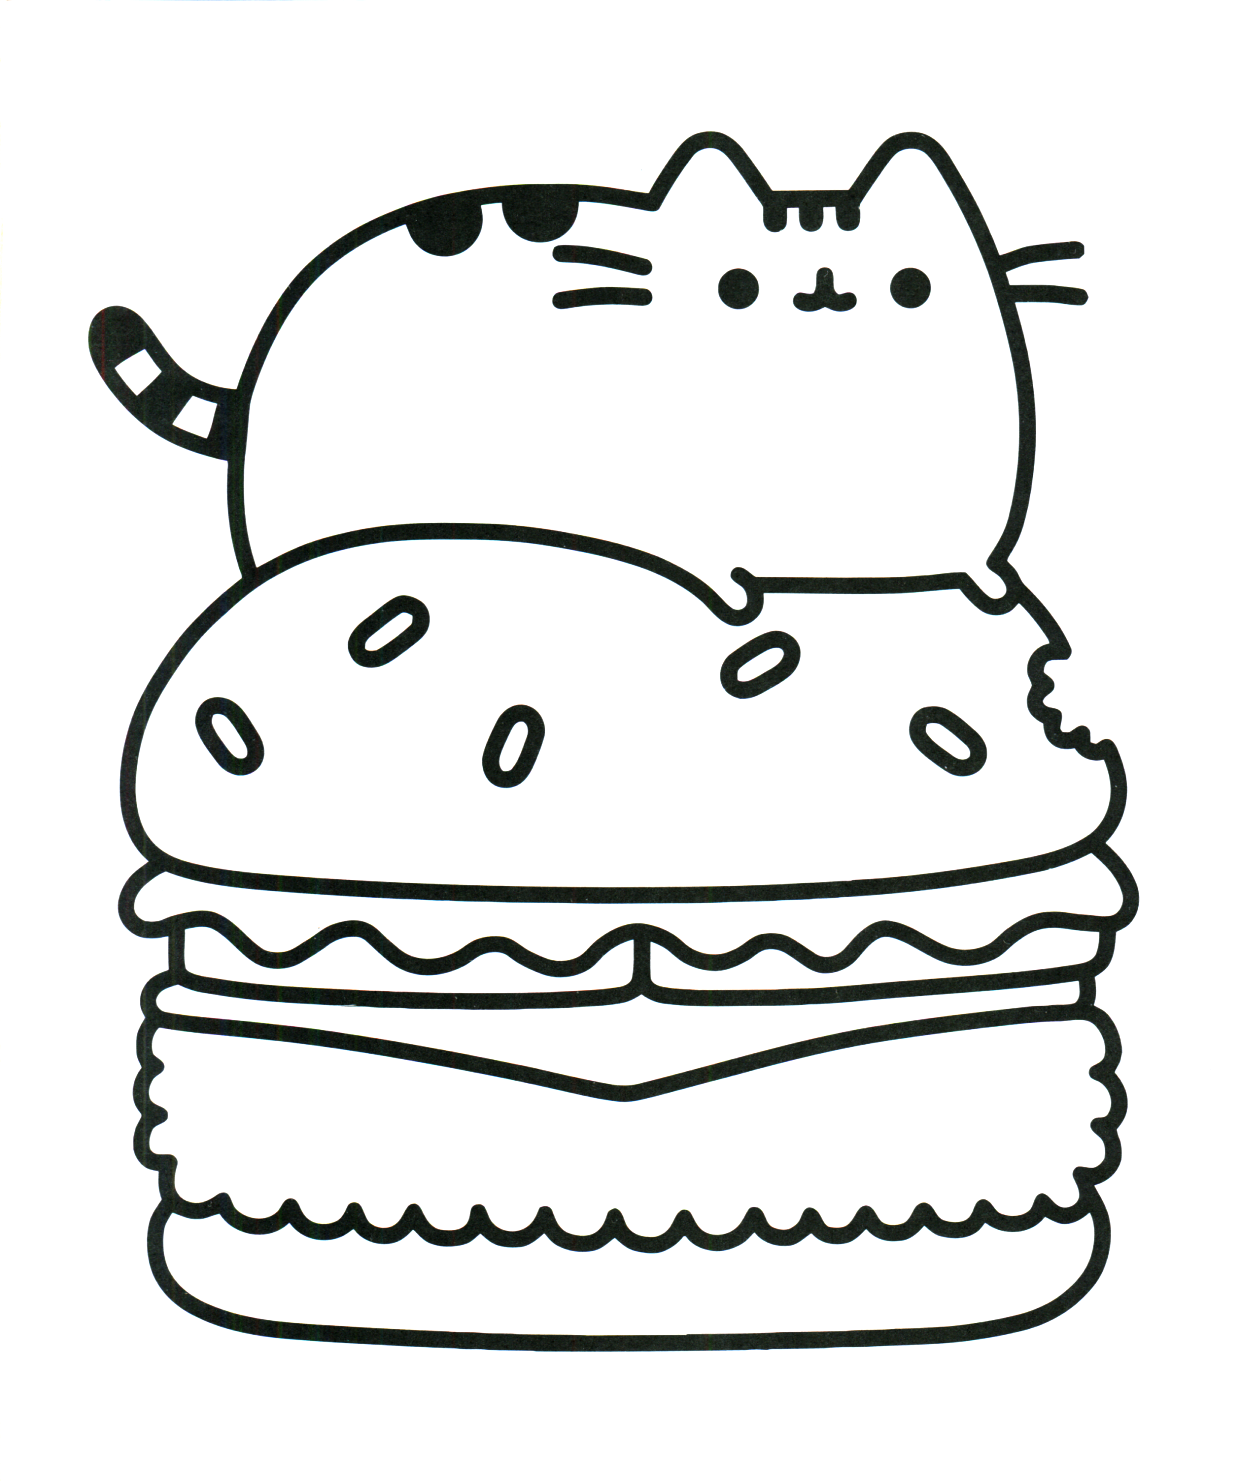 Pusheen Coloring Book Pusheen Pusheen the Cat | Målarbilder ...